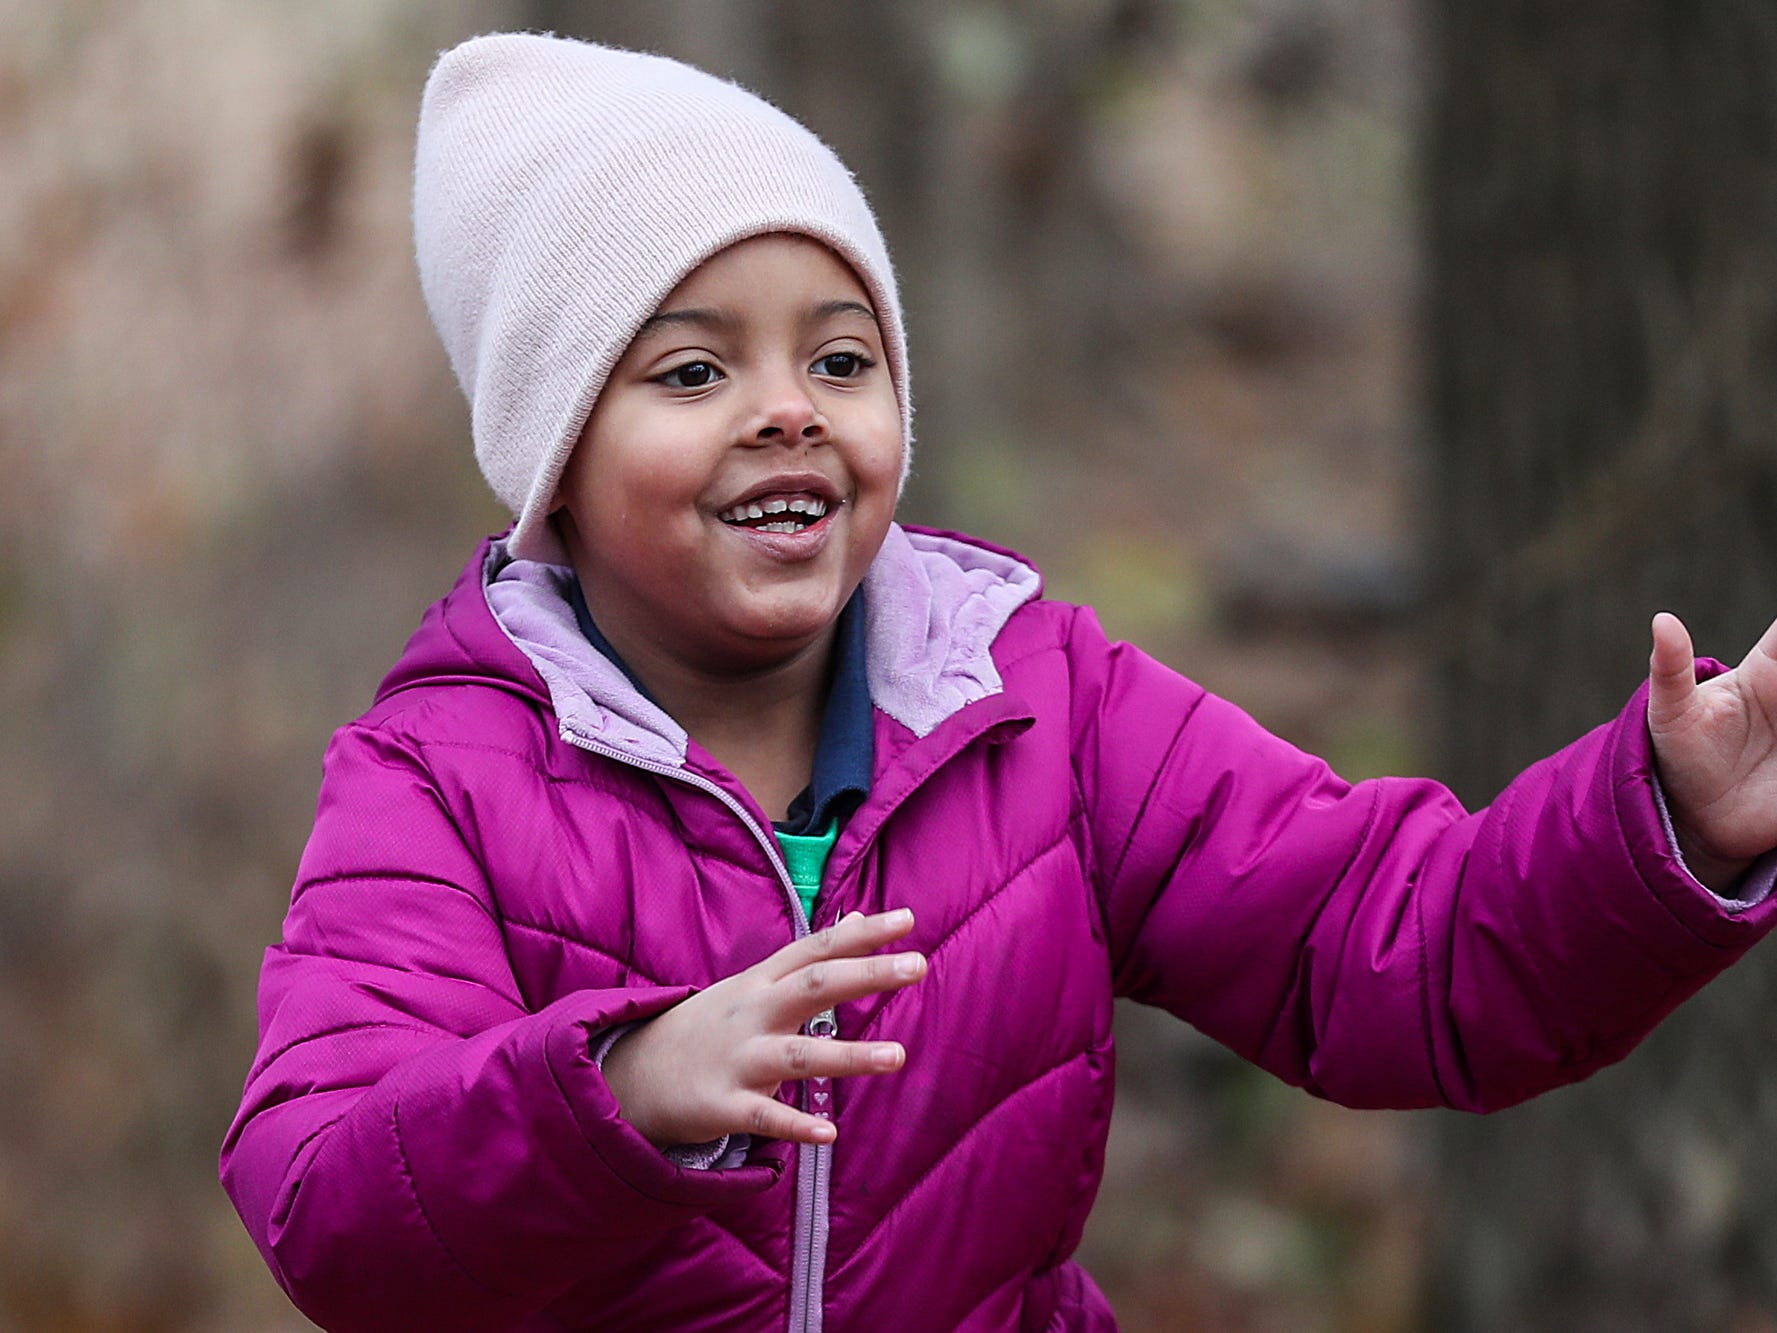 Faith Daniels, a second grader at Global Preparatory Academy, plays along a hike through the woods at Jameson Camp in Indianapolis, Friday, Nov. 30, 2018.